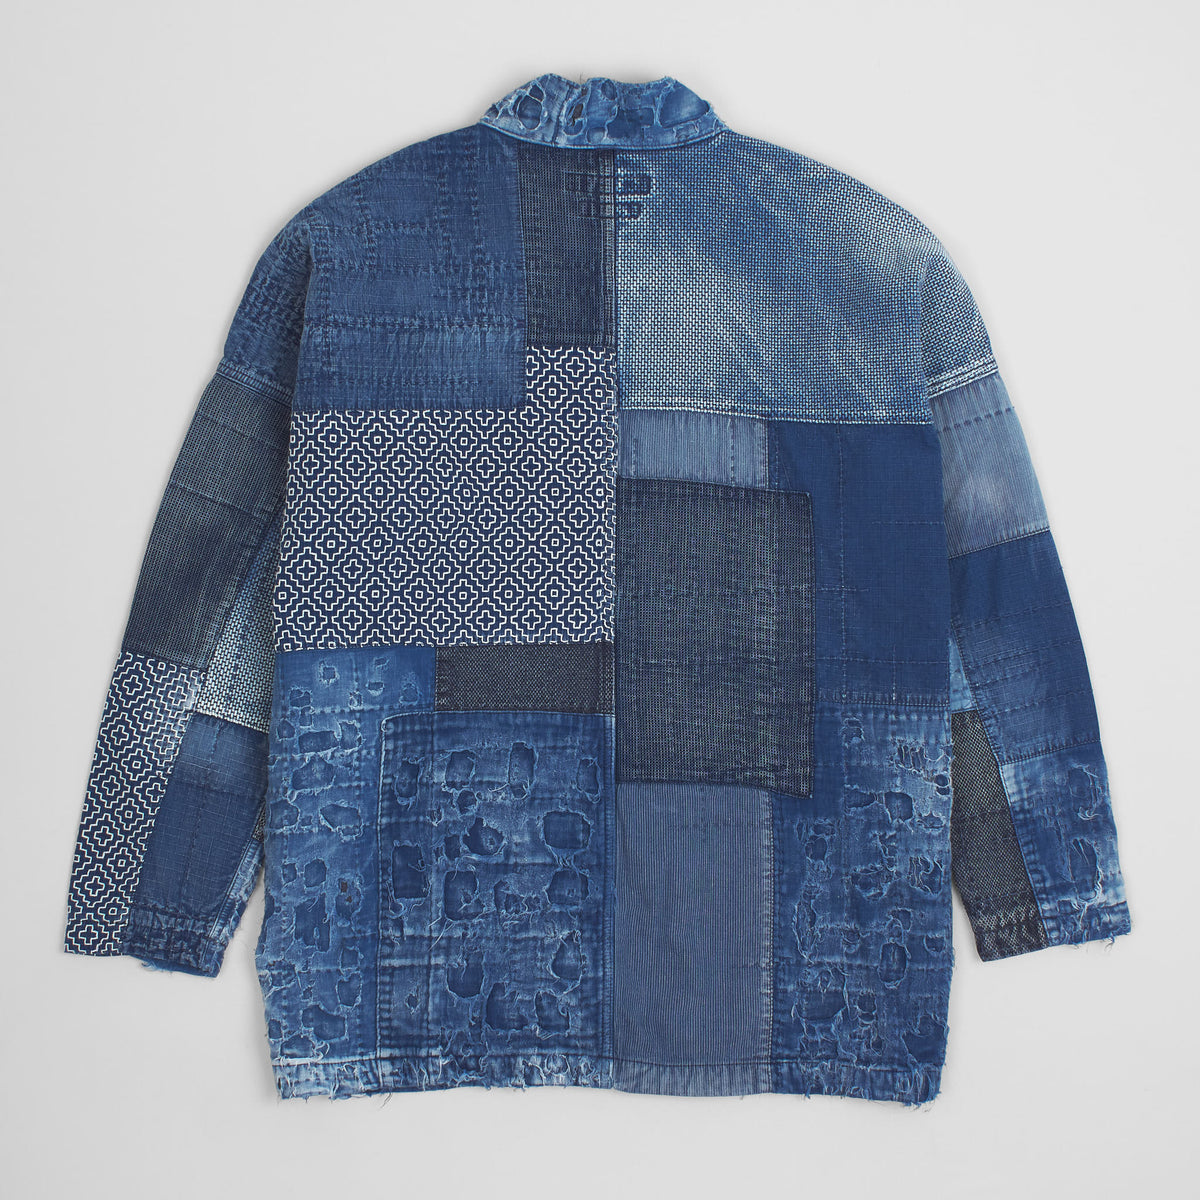 Fundamental Sashiko Haori